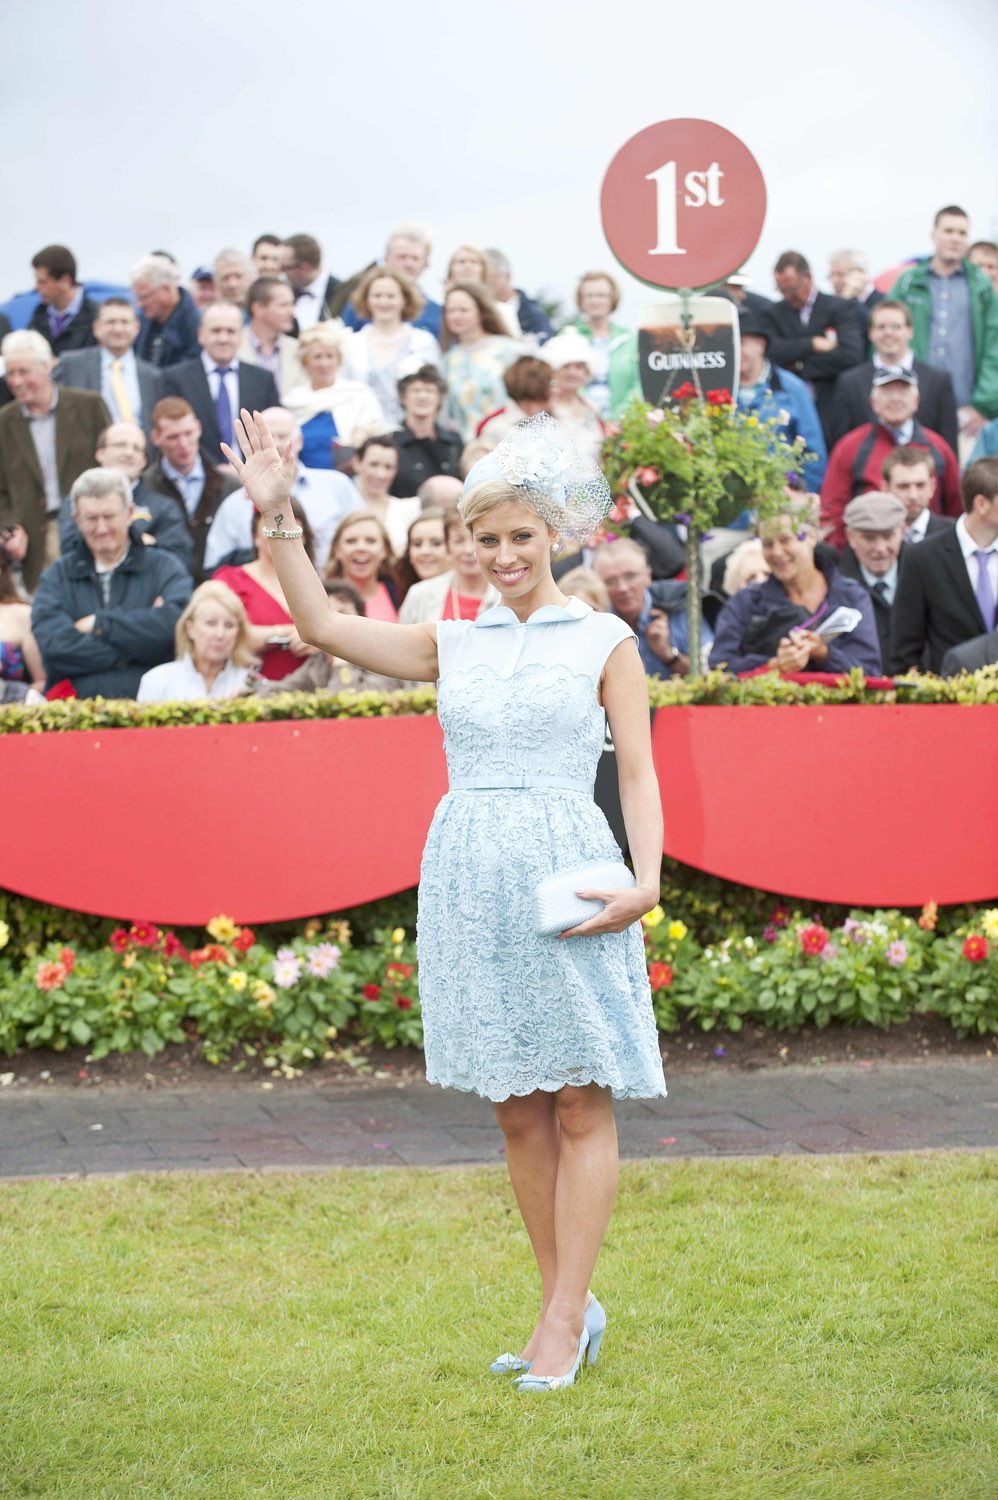 Rachelle Guiry from Limerick is the winner of Best Dressed Lady at Ladies day at Galway Races 2013.